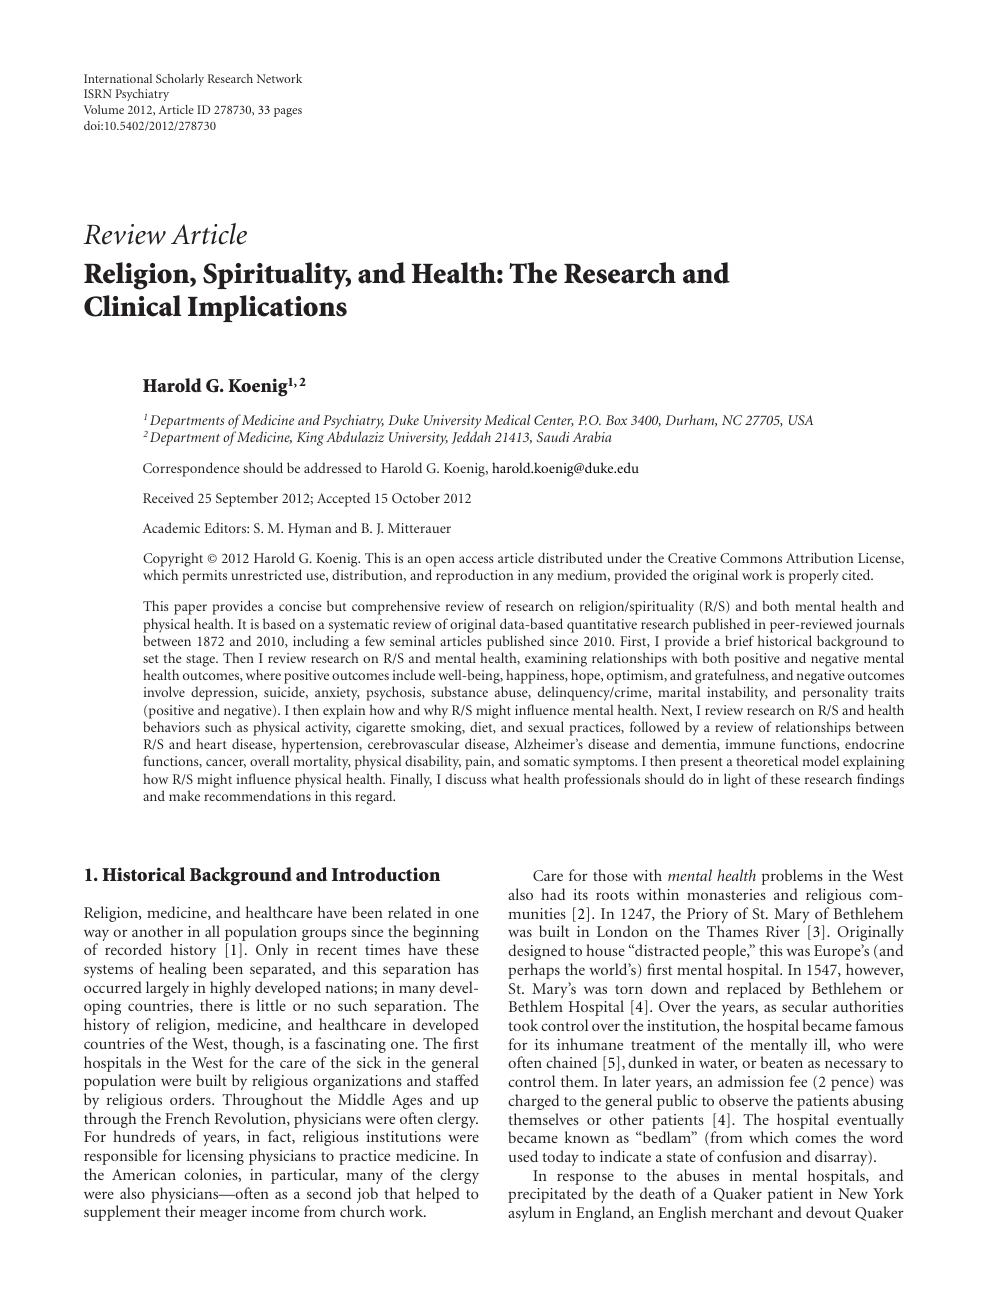 Religion, Spirituality, and Health: The Research and